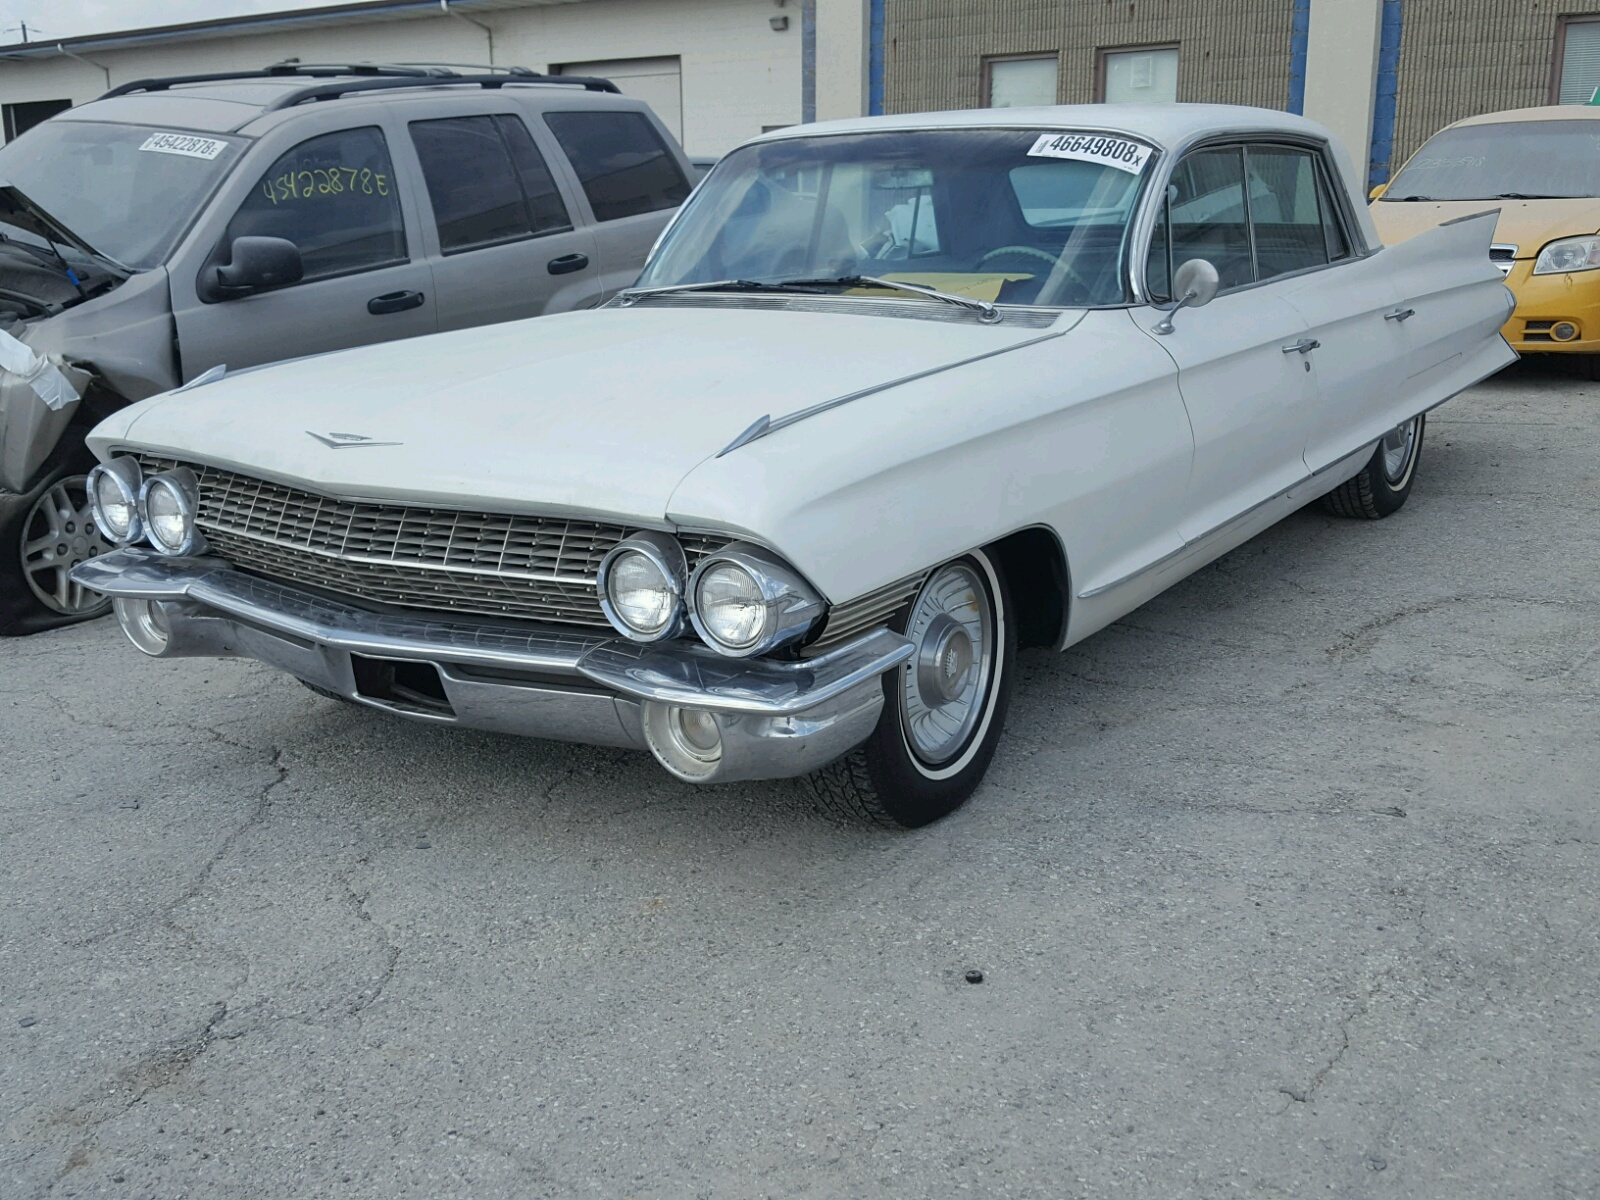 1961 Cadillac Fleetwood For Sale At Copart Indianapolis In Lot Sedan Deville 46649808